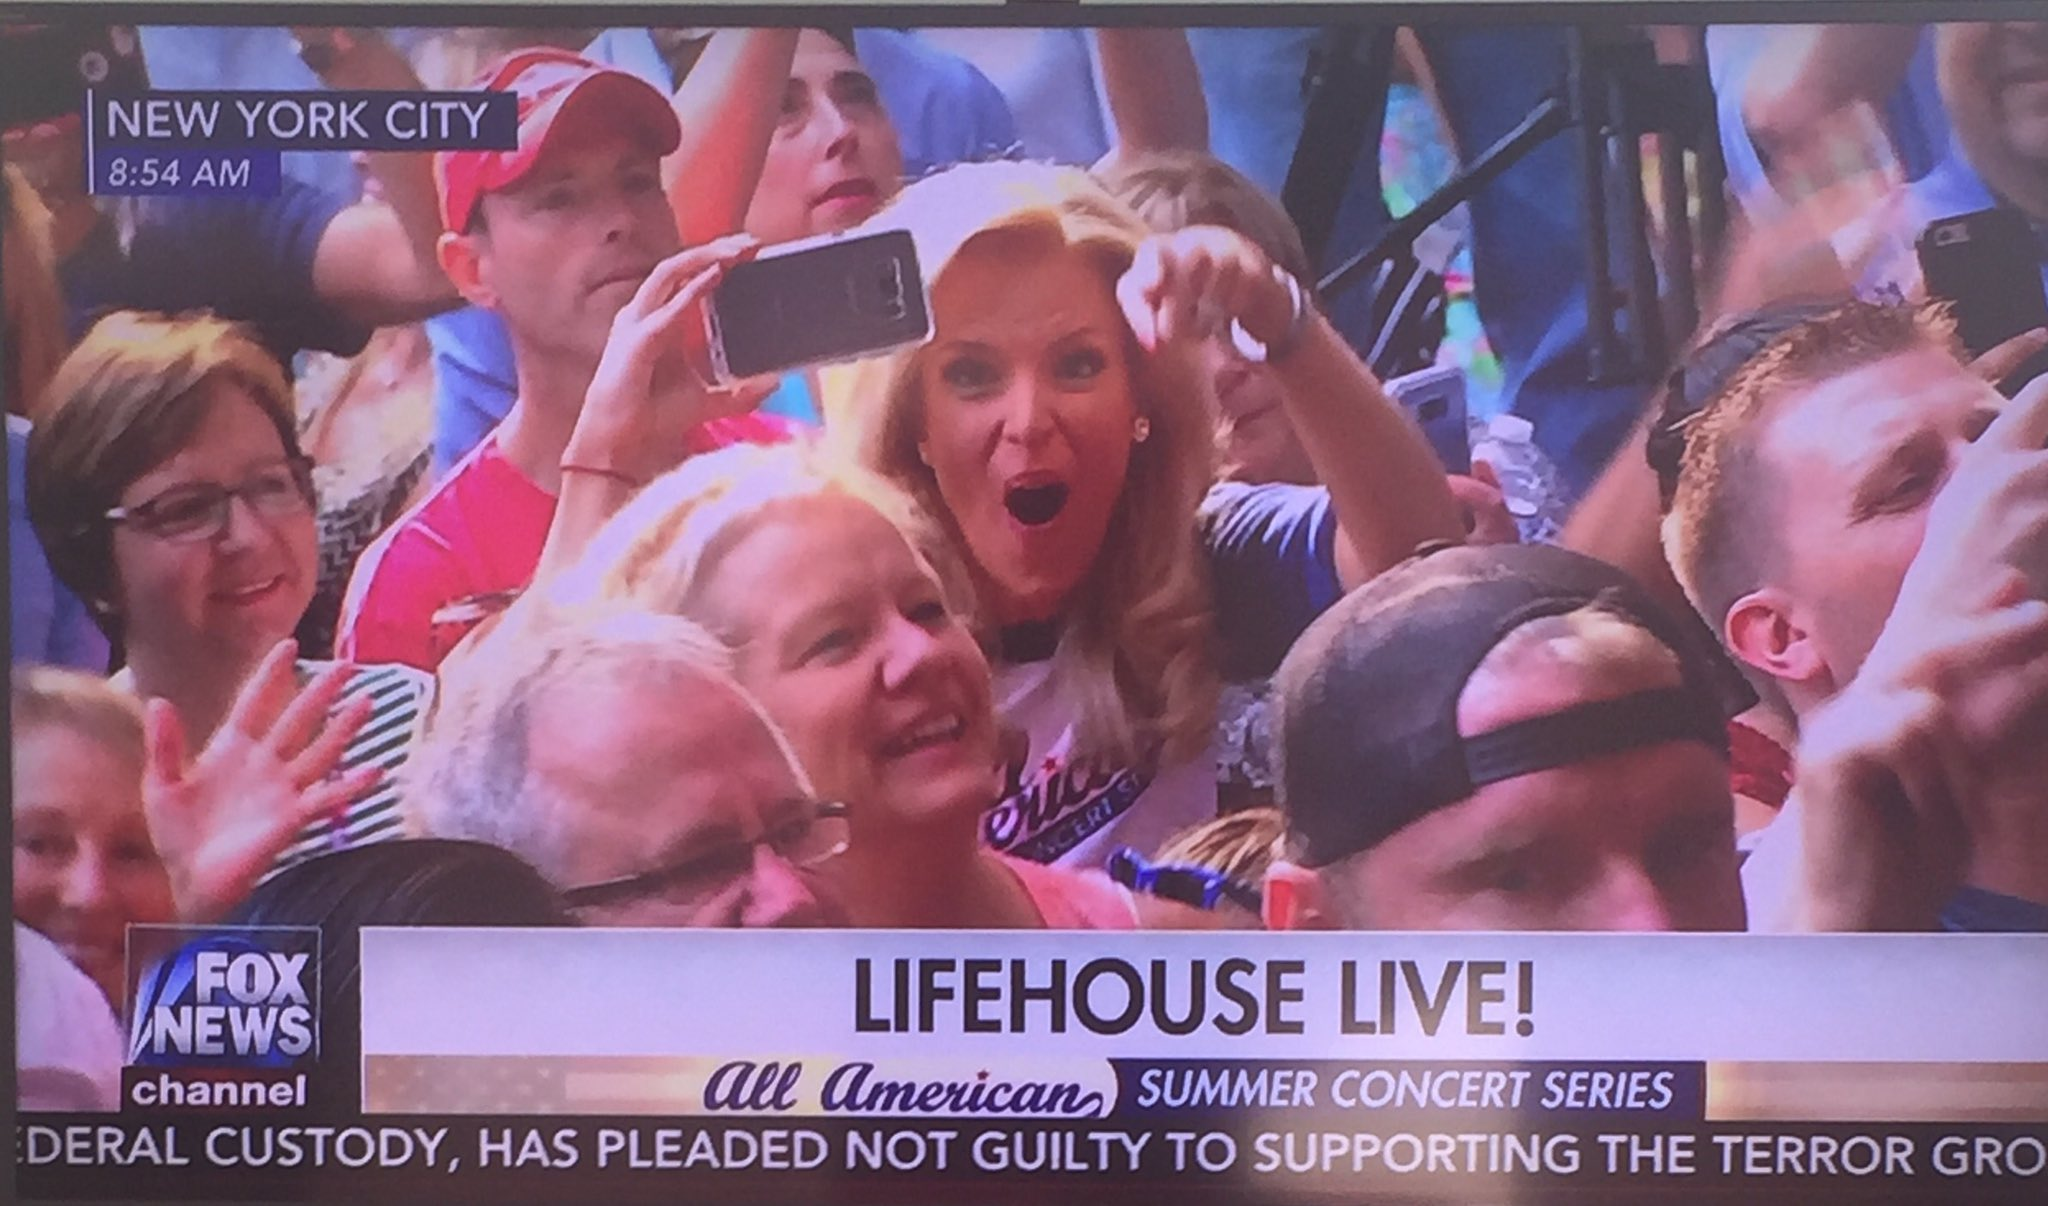 @JaniceDean Knows How To Party!  @lifehouse @foxandfriends #foxconcert #BetterWithFriends #GoJanice ������ https://t.co/RPYEJgDsaE